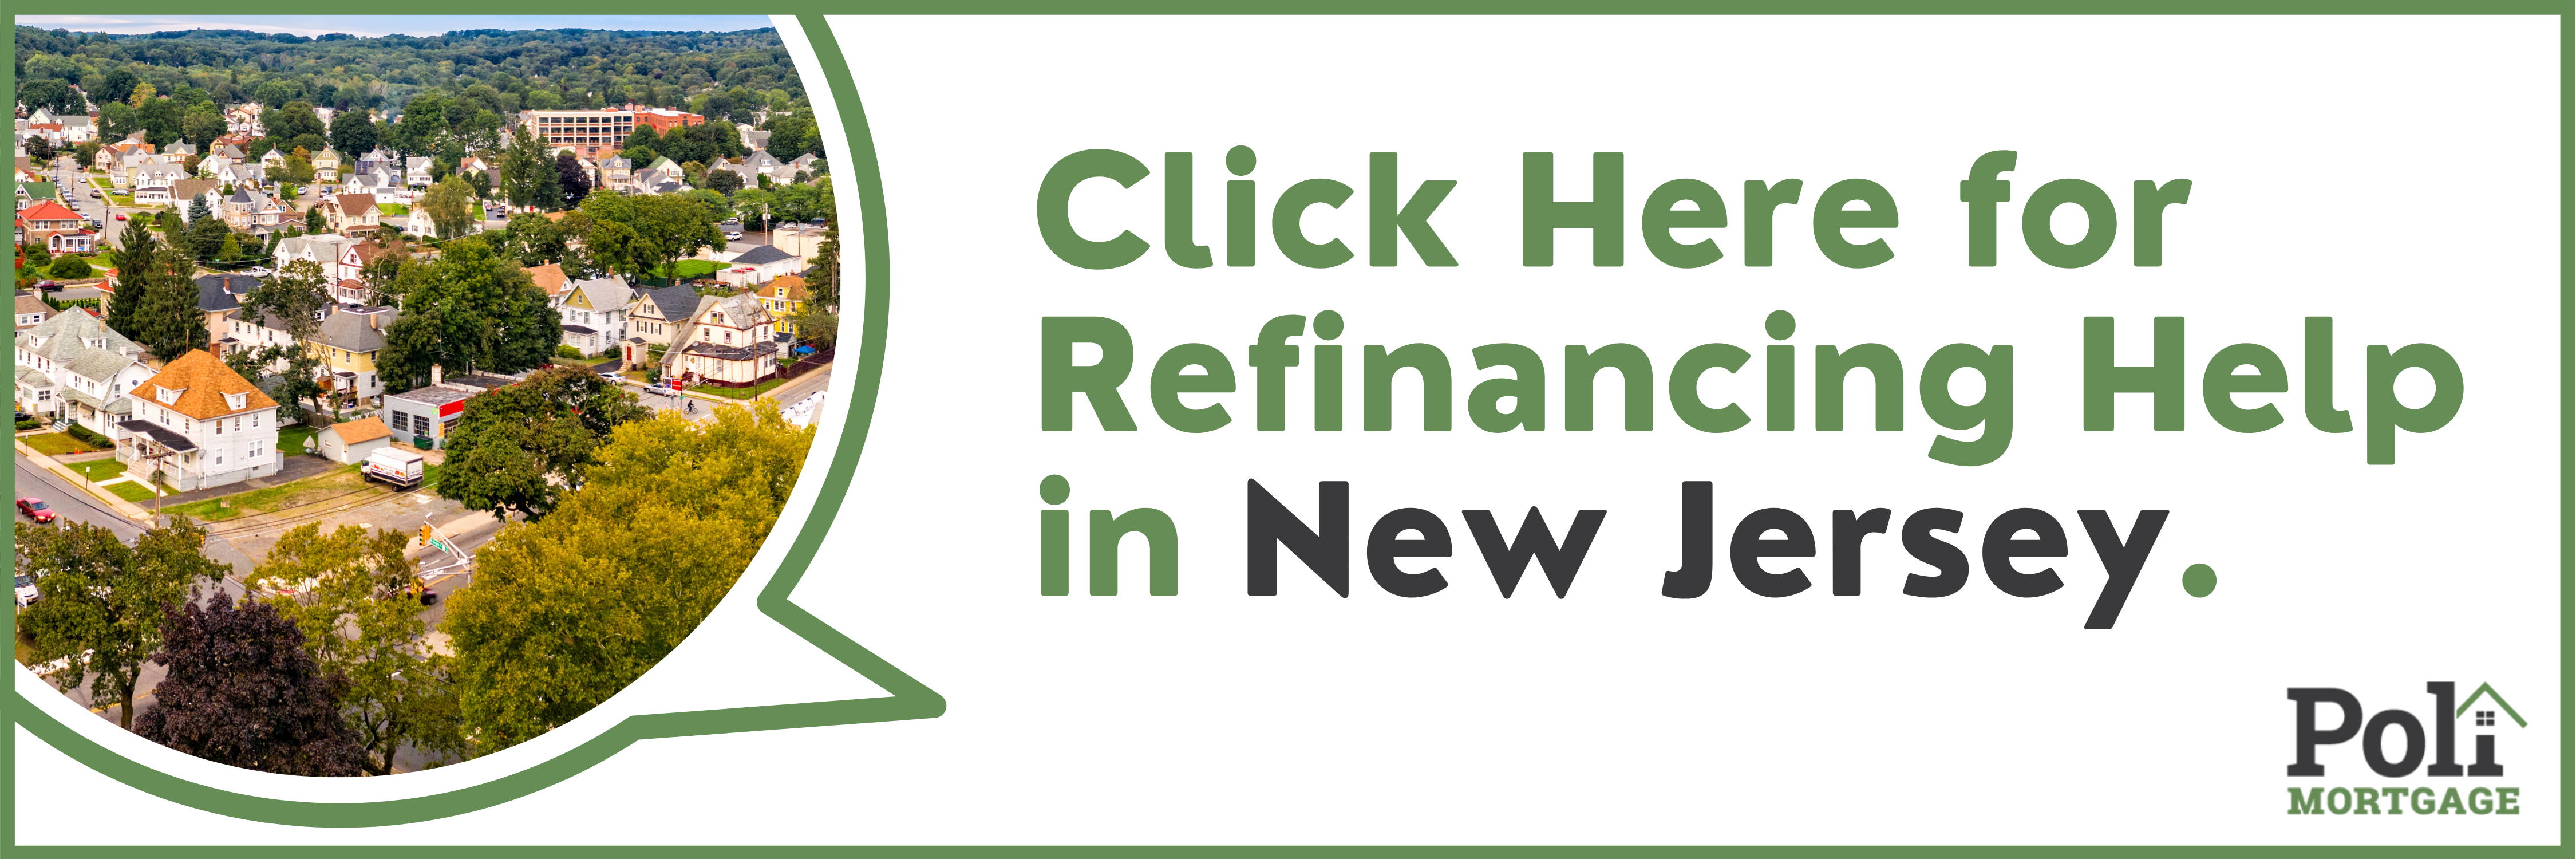 Click Here for Refinancing Help in New Jersey